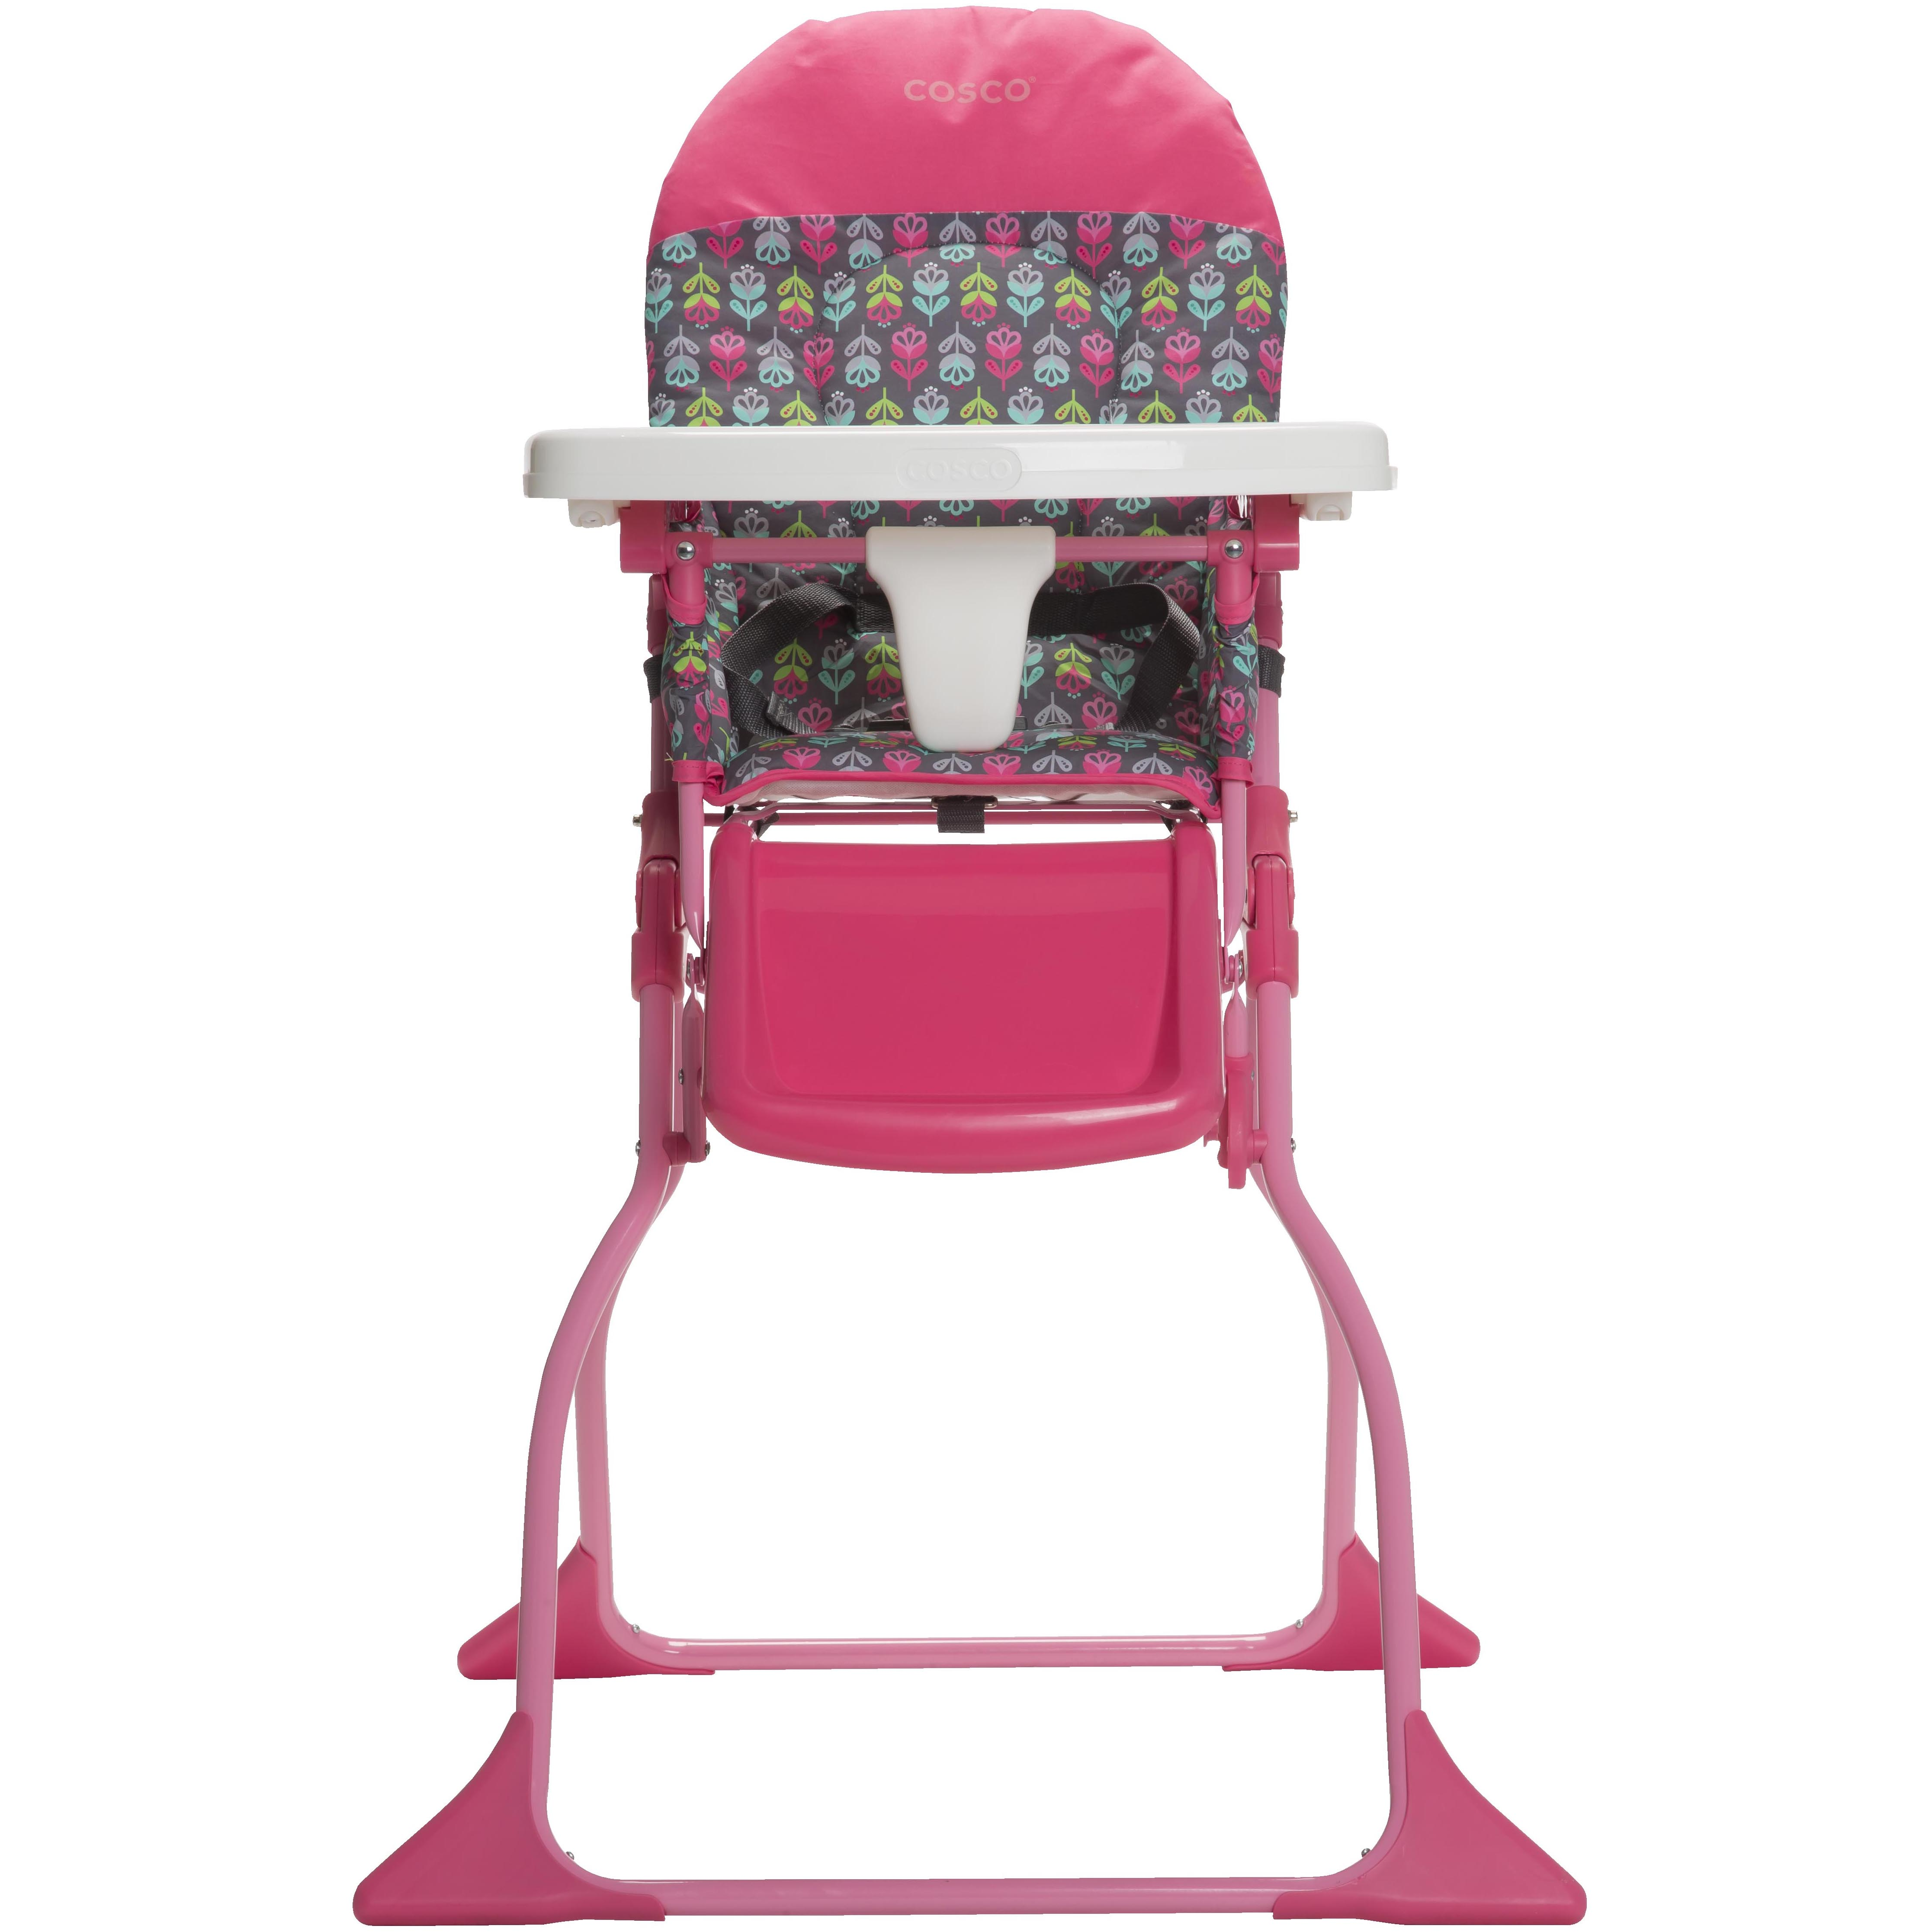 Cosco Simple Fold High Chair, Geo Floral by Cosco%C2%AE